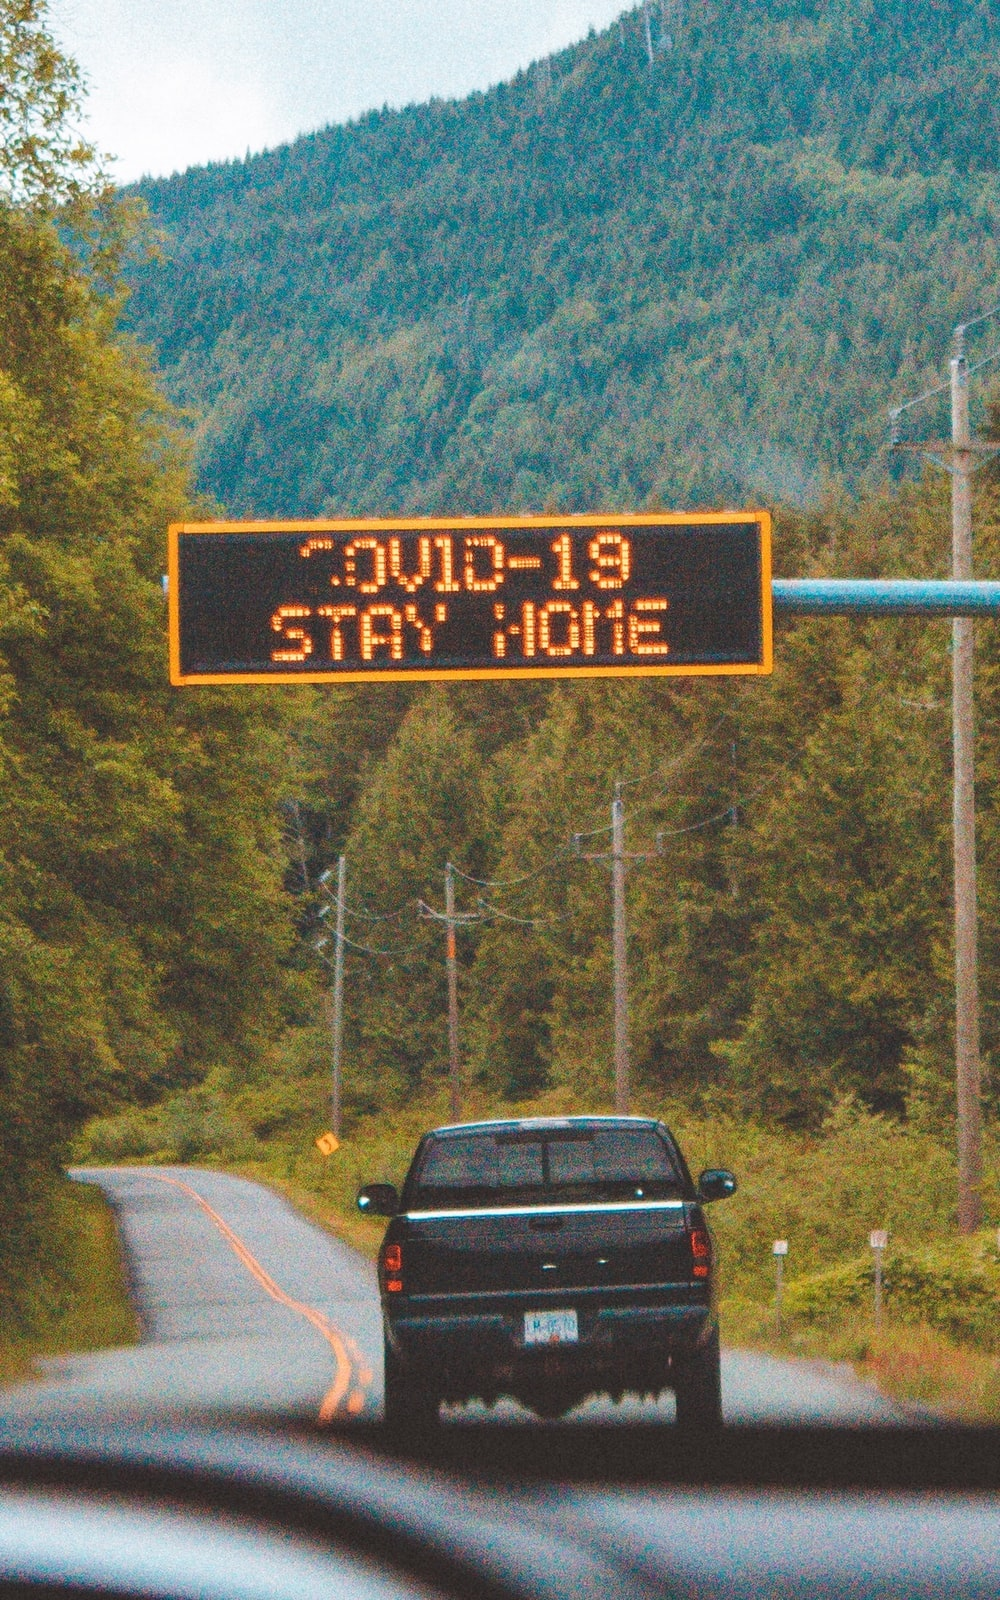 black car on road near the road sign